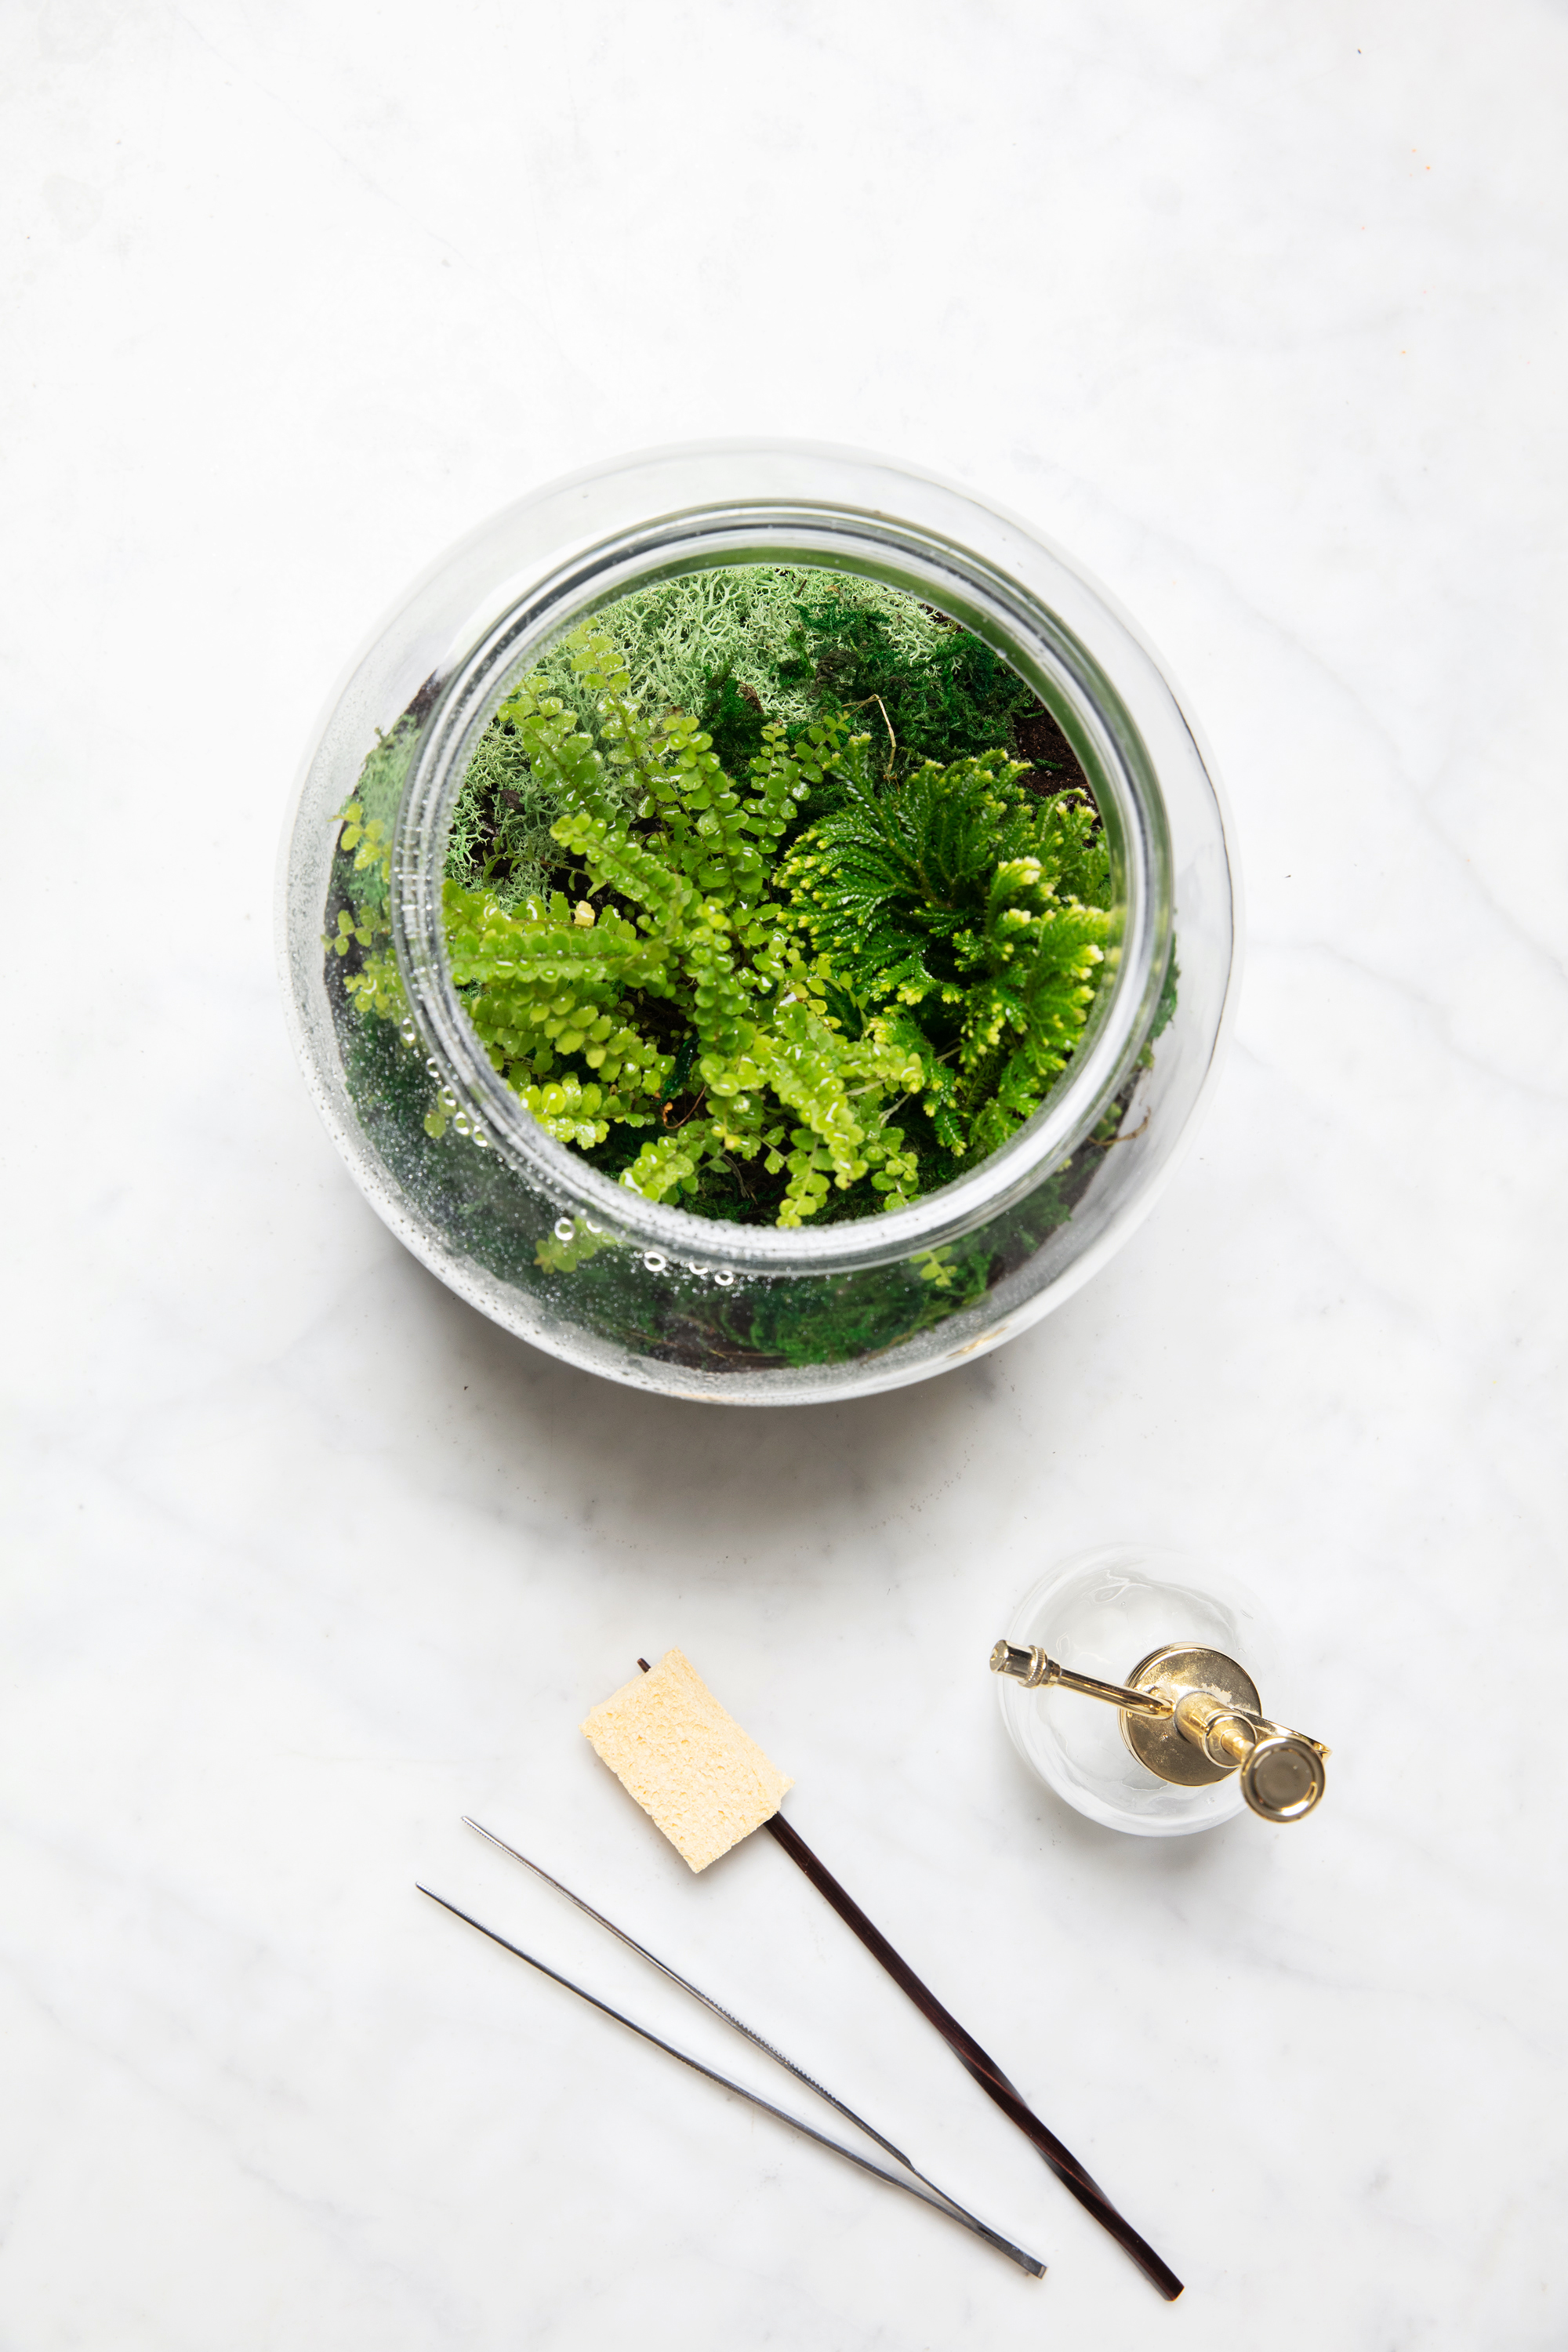 terrarium care tools